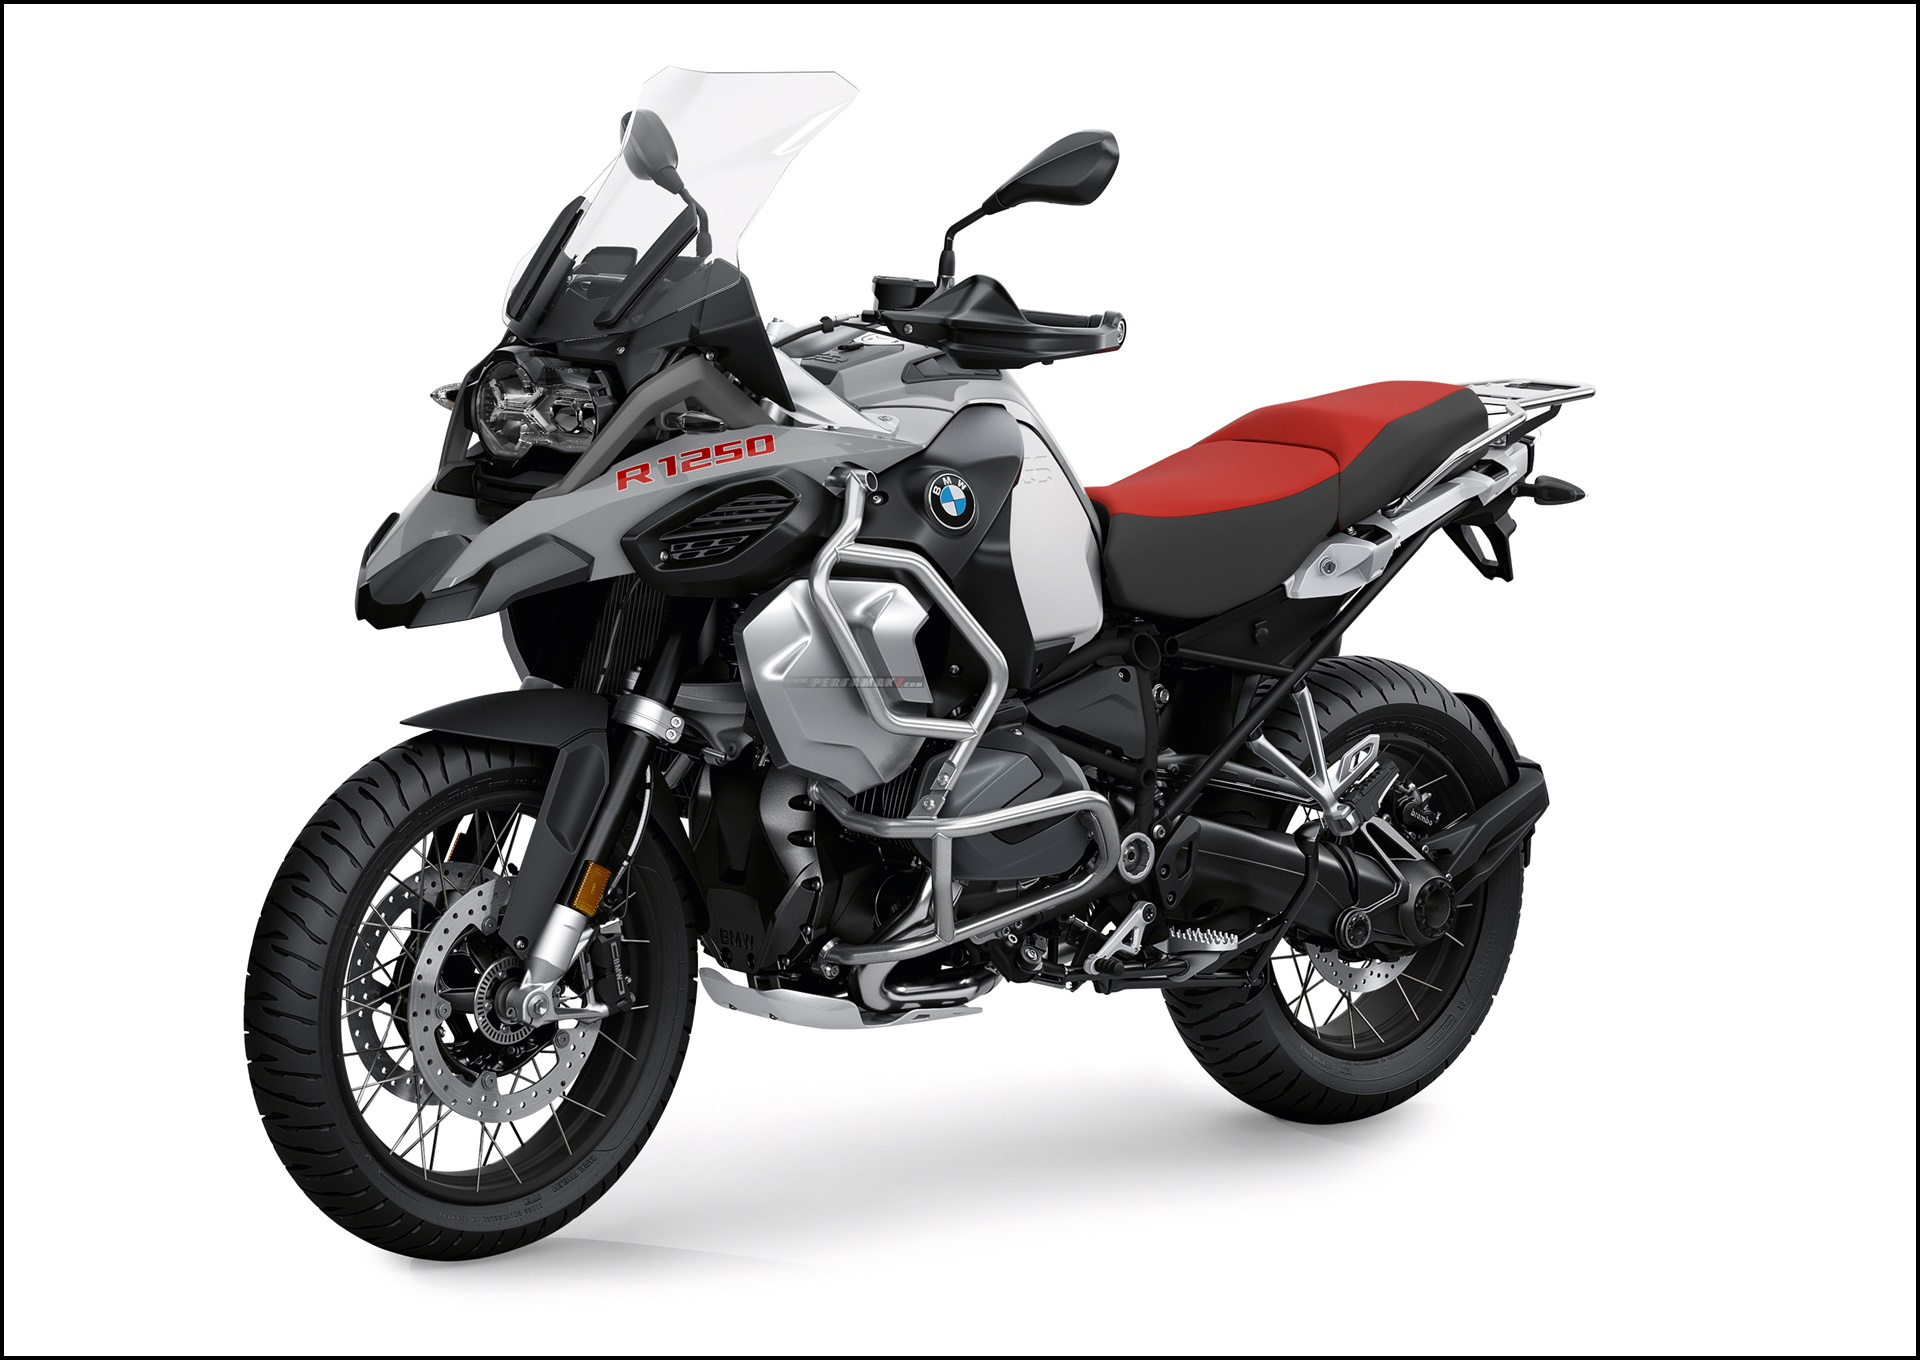 Wallpaper BMW R1250GS Adventure